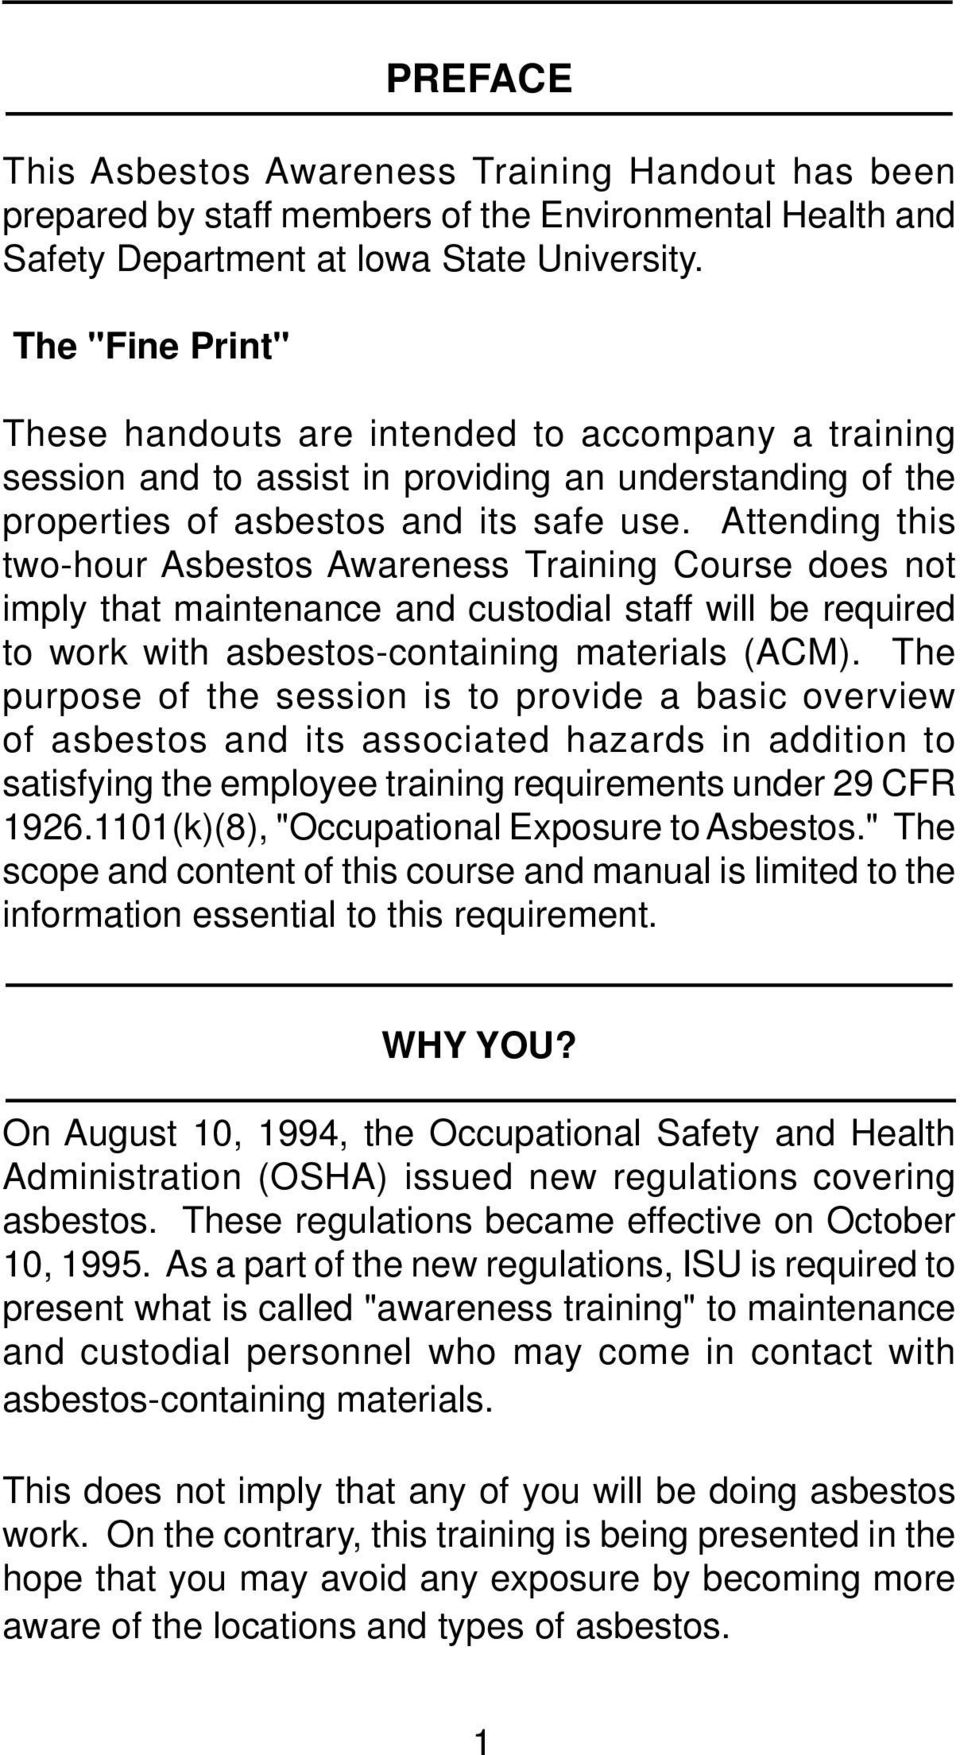 Attending this two-hour Asbestos Awareness Training Course does not imply that maintenance and custodial staff will be required to work with asbestos-containing materials (ACM).